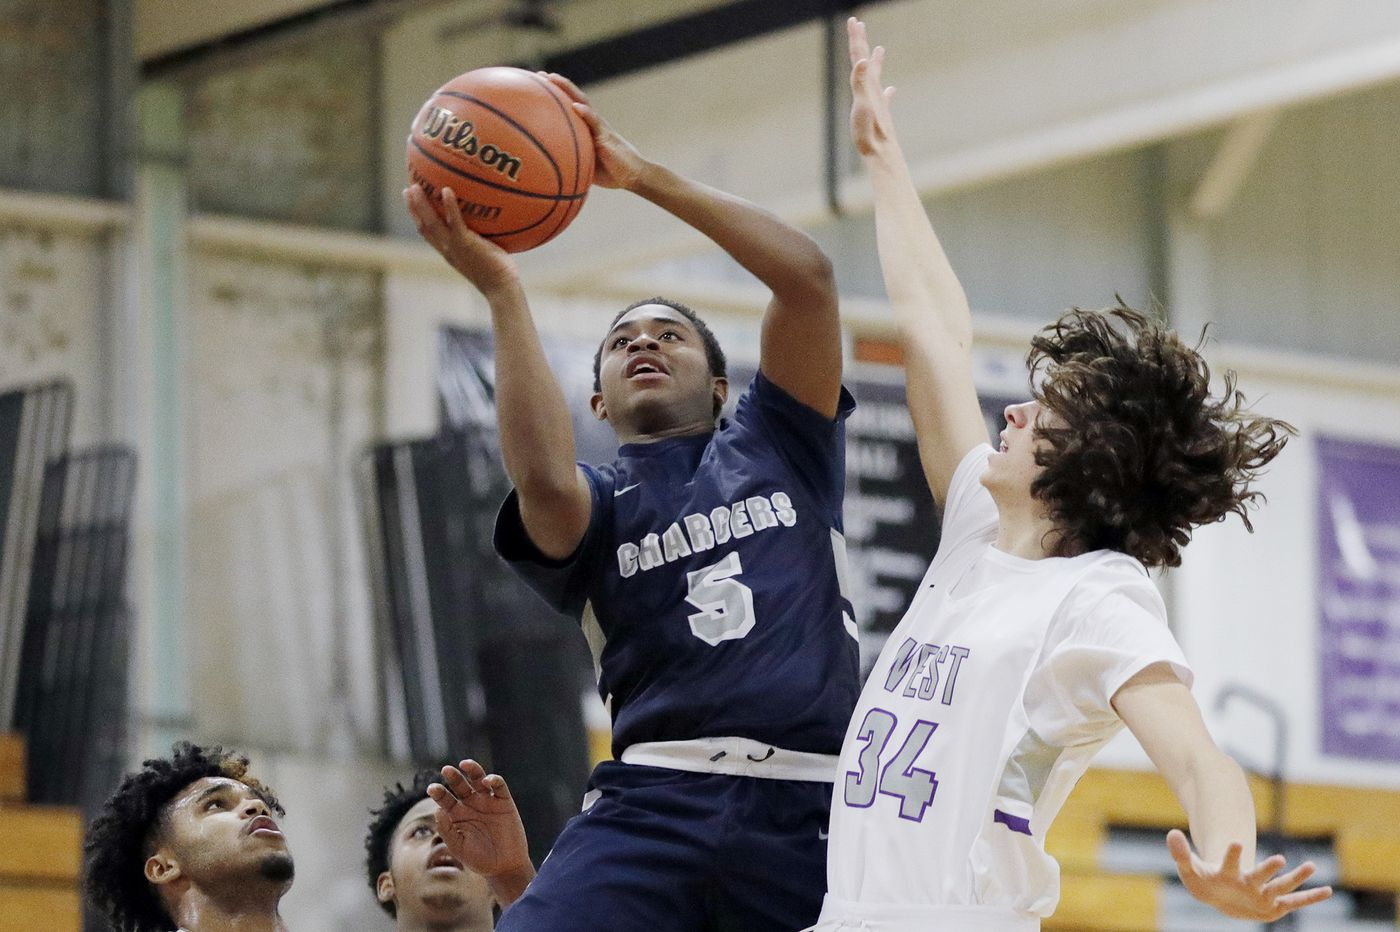 Off to their best start ever, the Timber Creek boys want to finish strong in the basketball playoffs